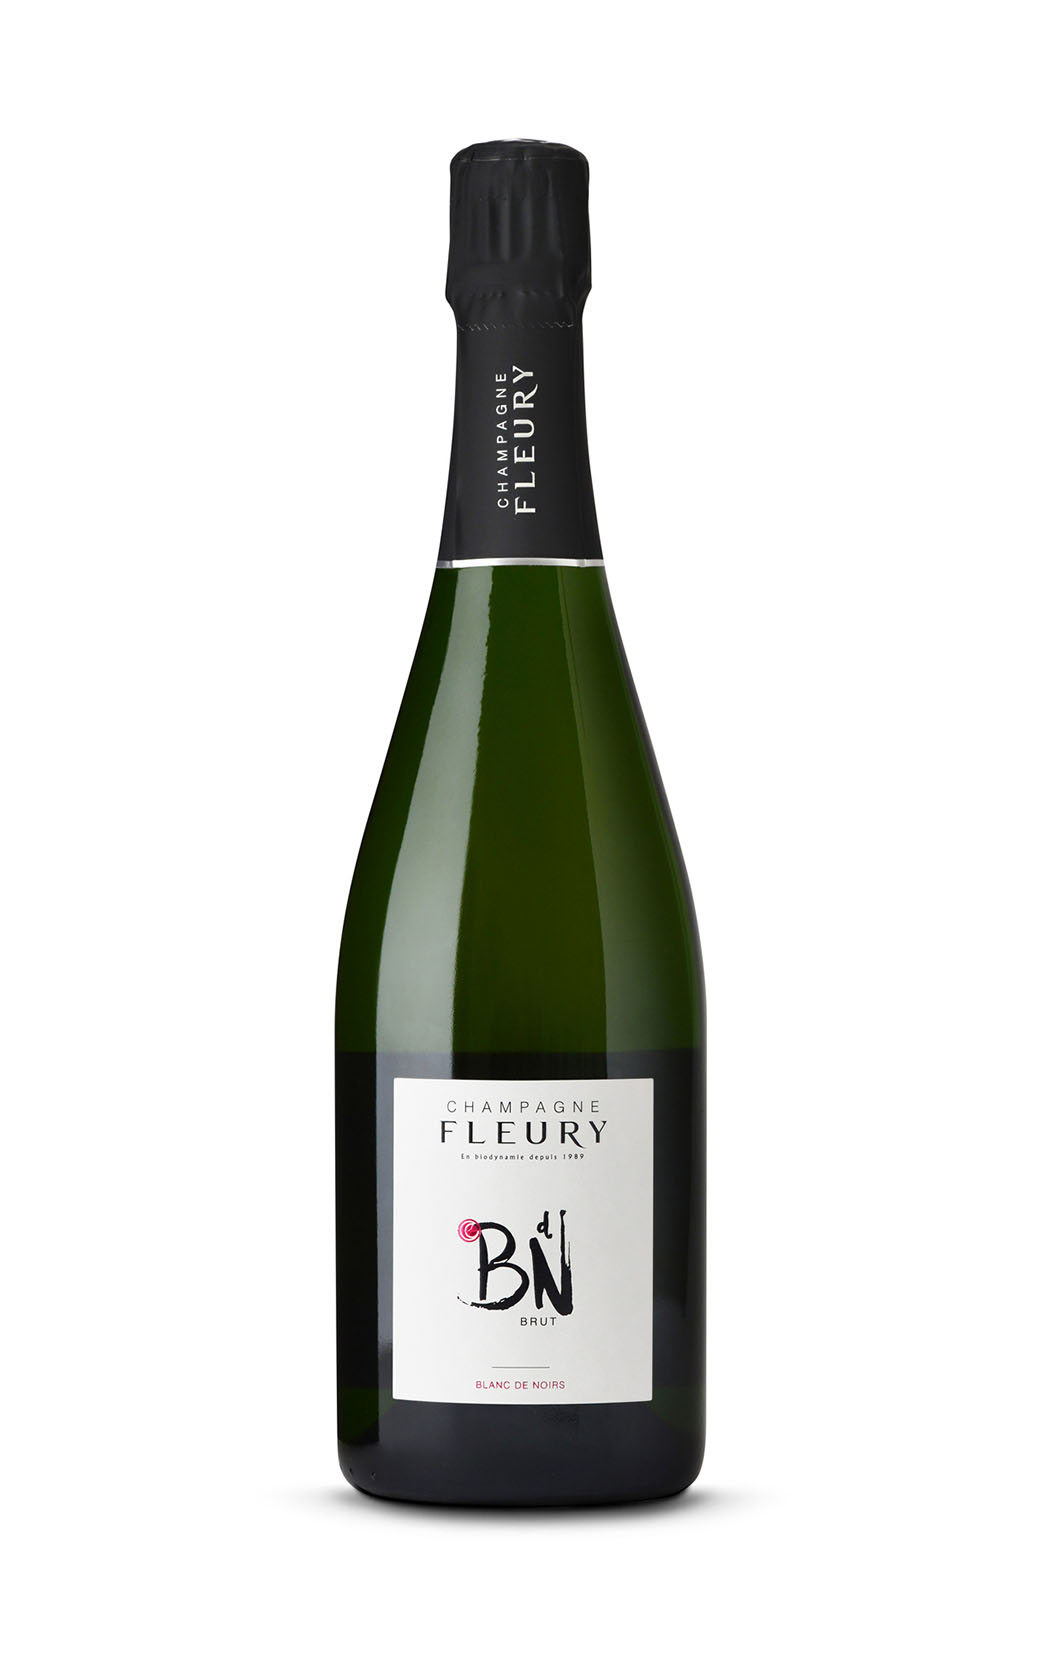 Photo bouteille champagne